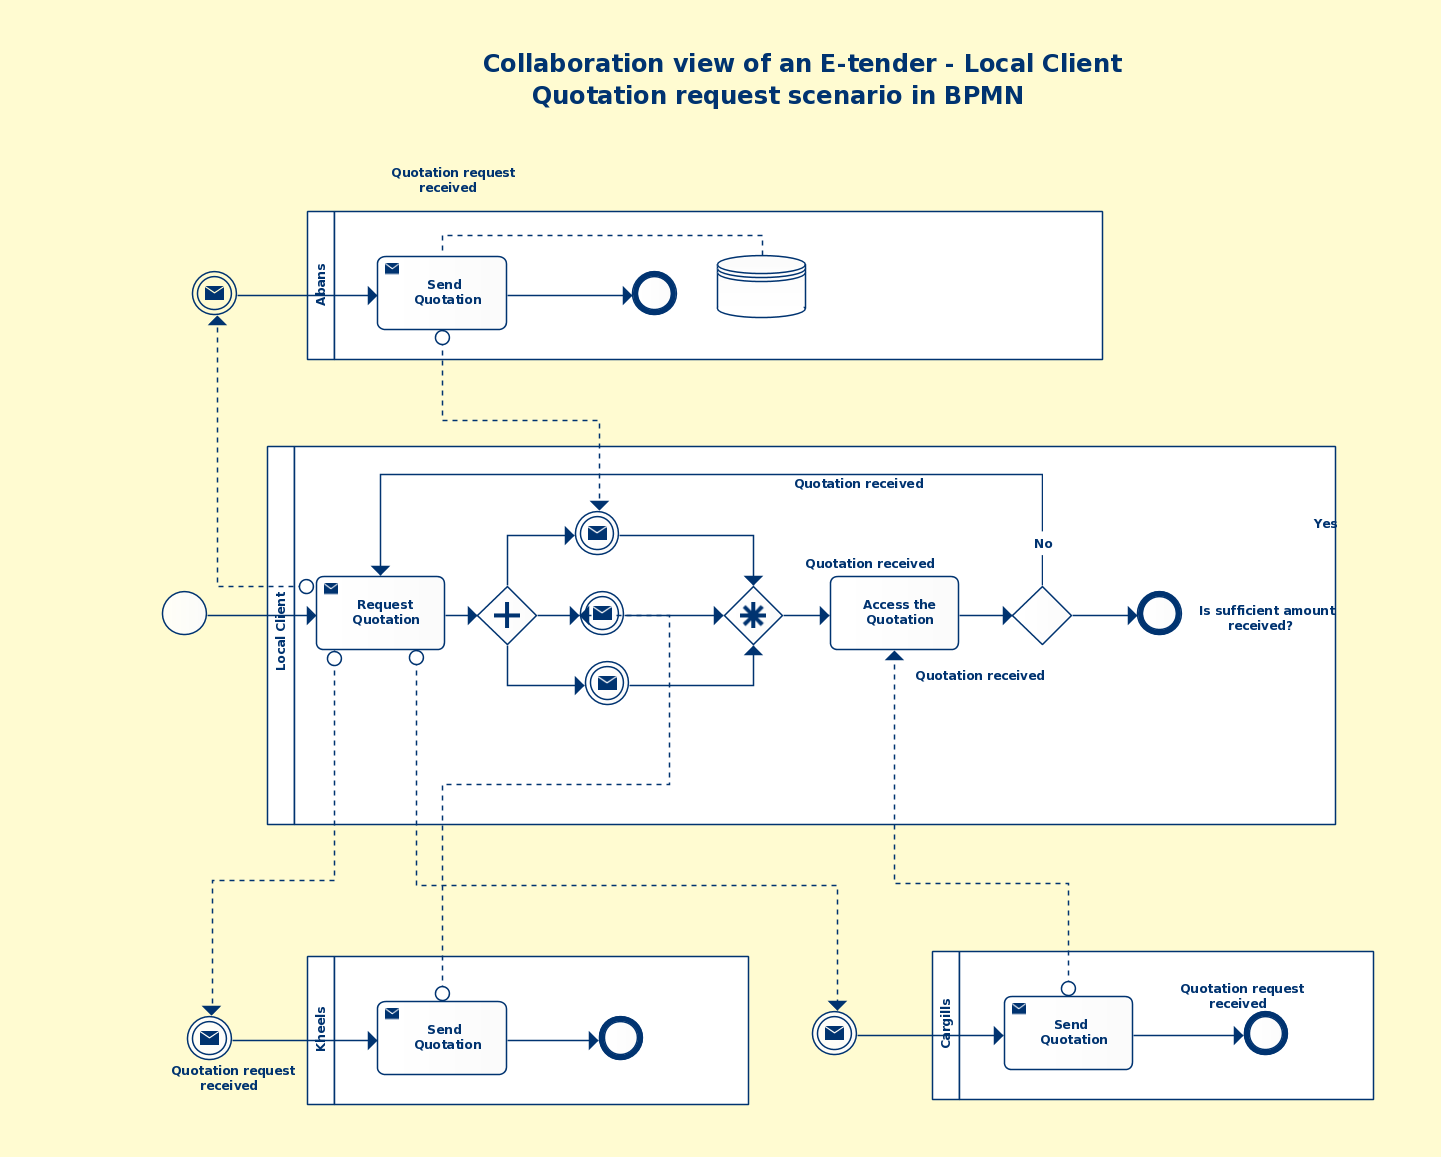 prince2 process flow diagram 2014 business process modeling techniques explained with example  business process modeling techniques